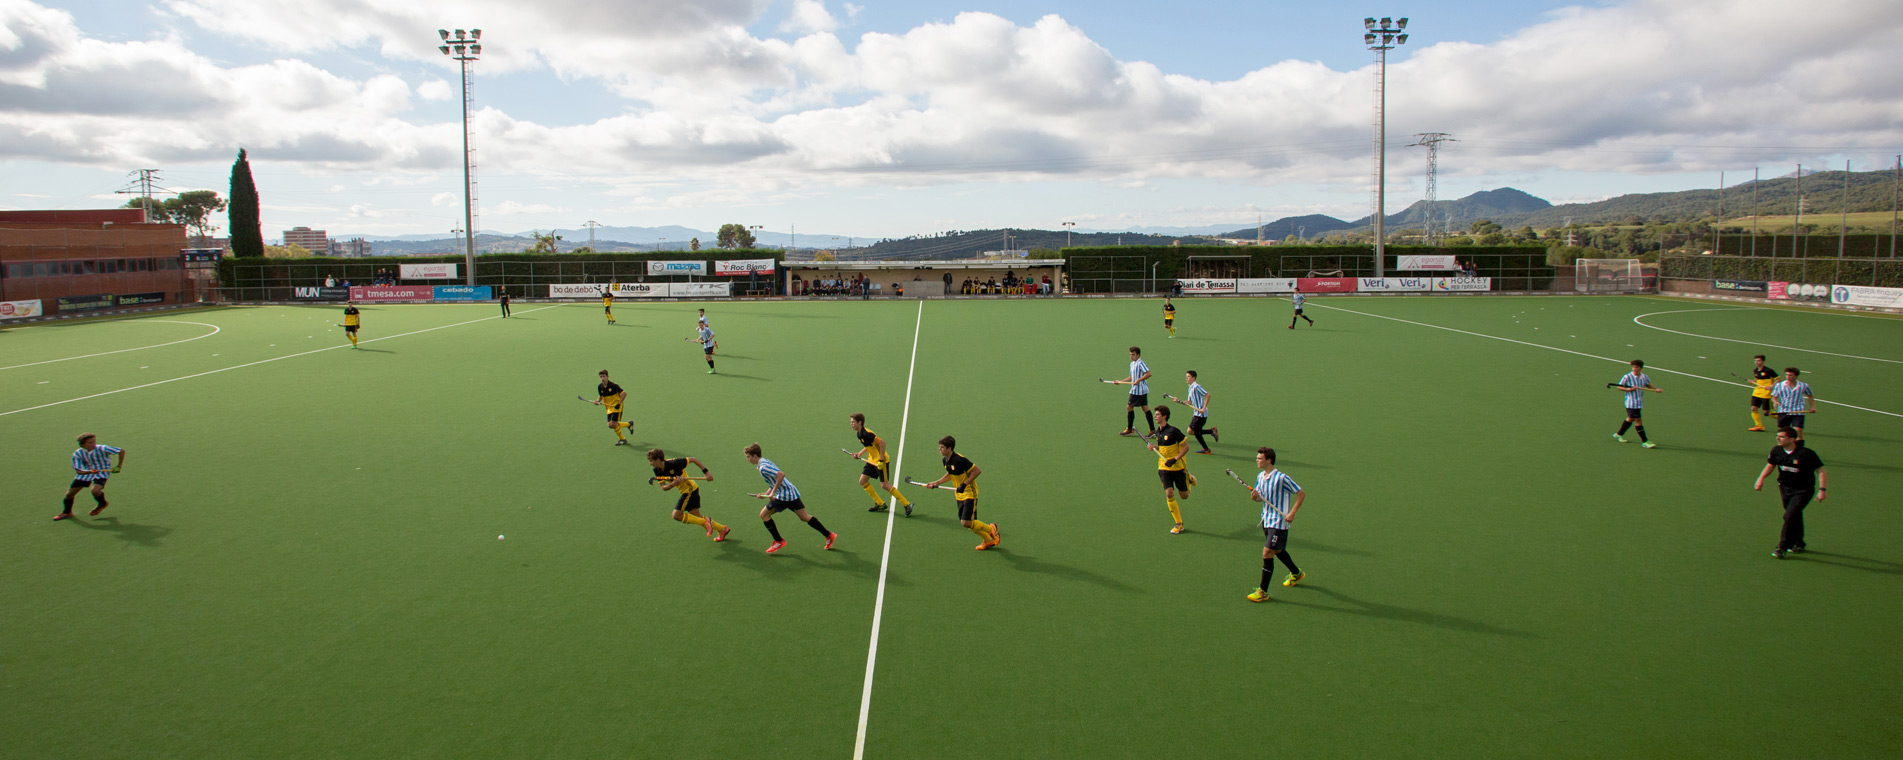 hockey-carrussel